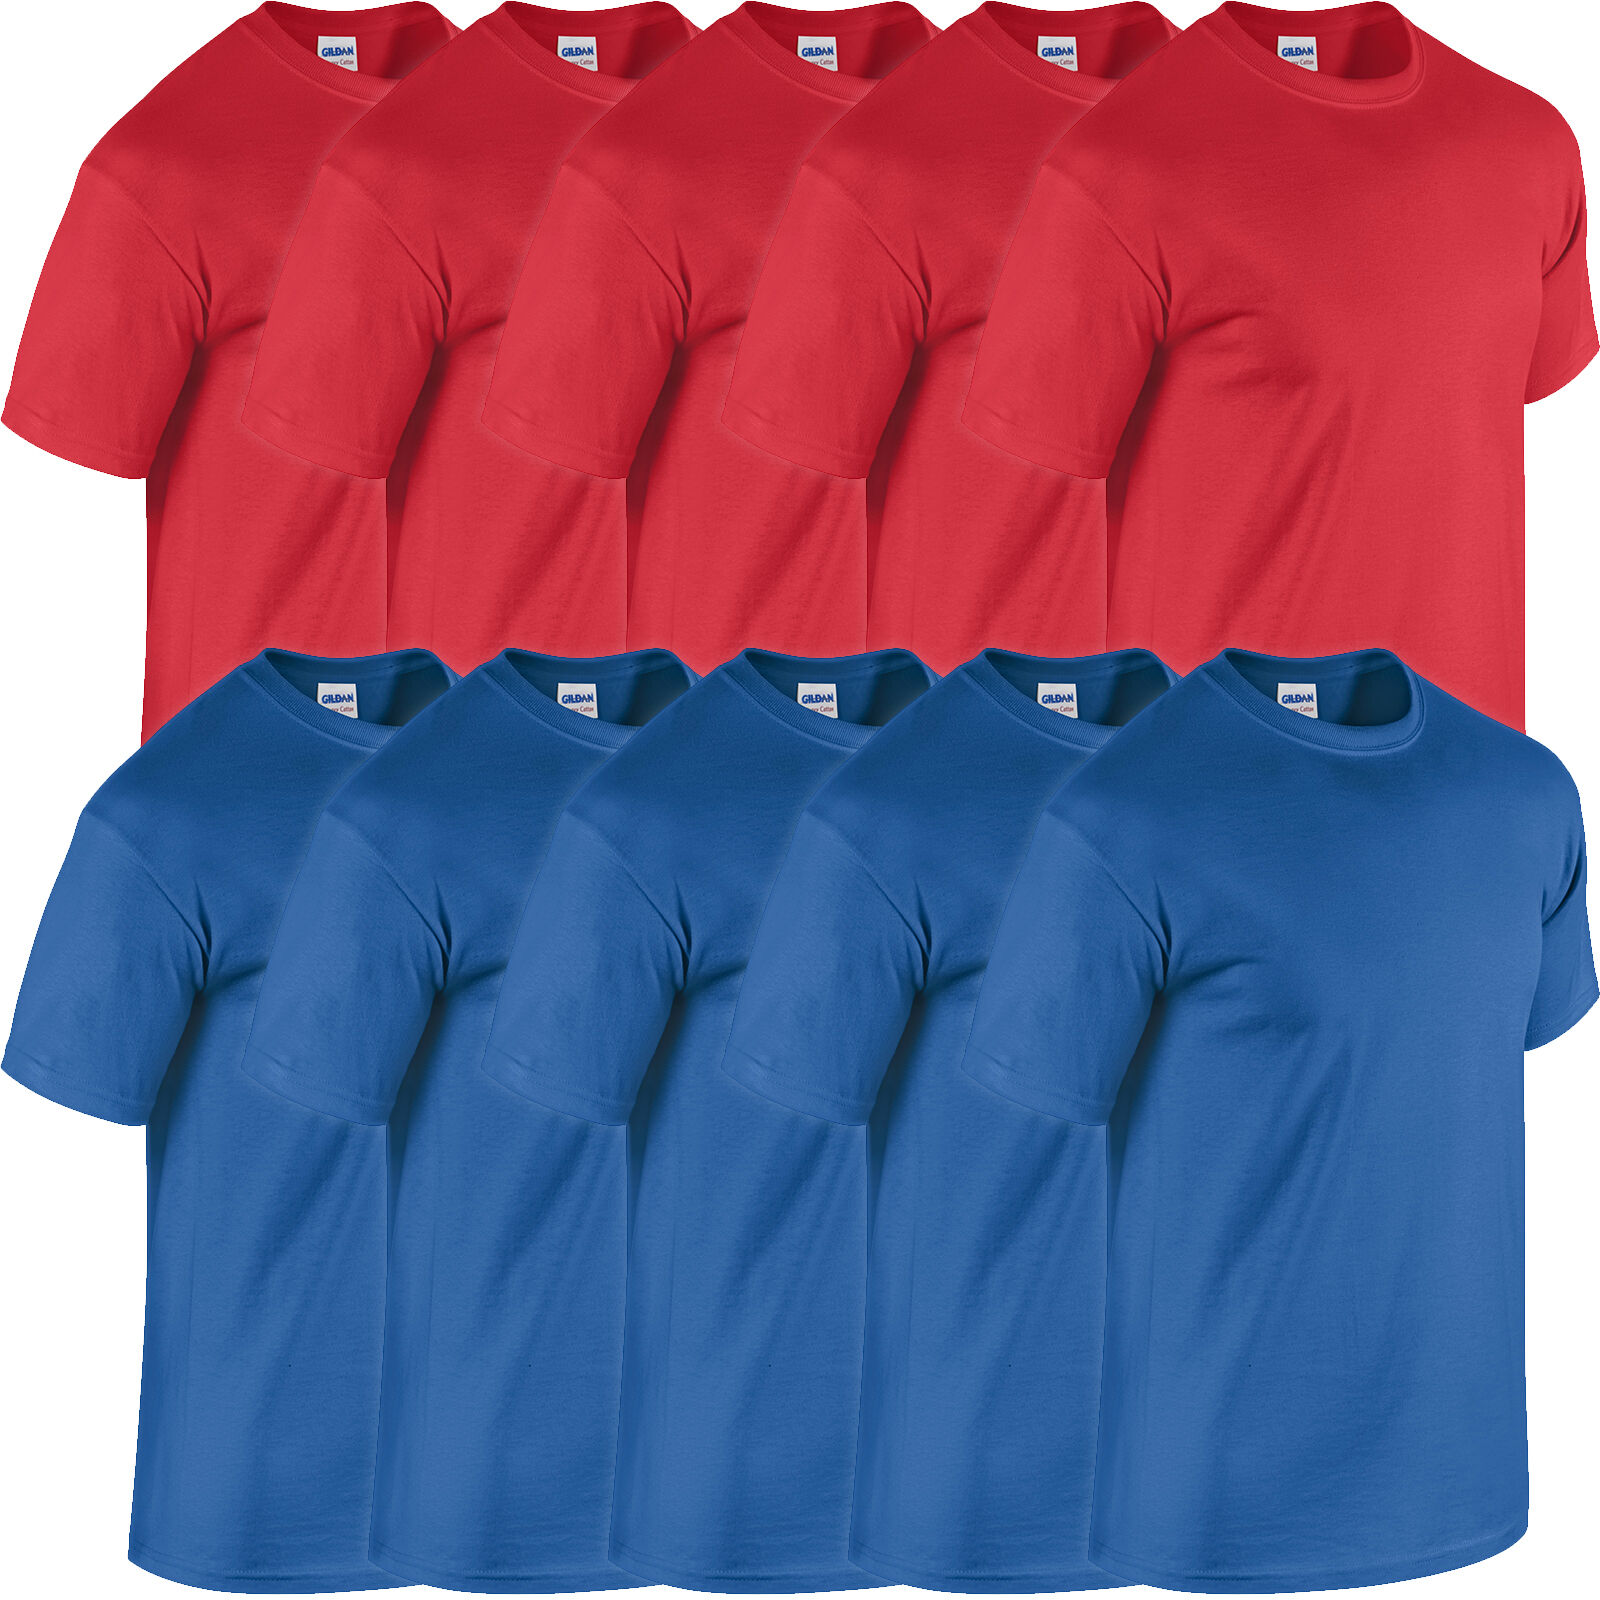 5 x Royal Blue and Red